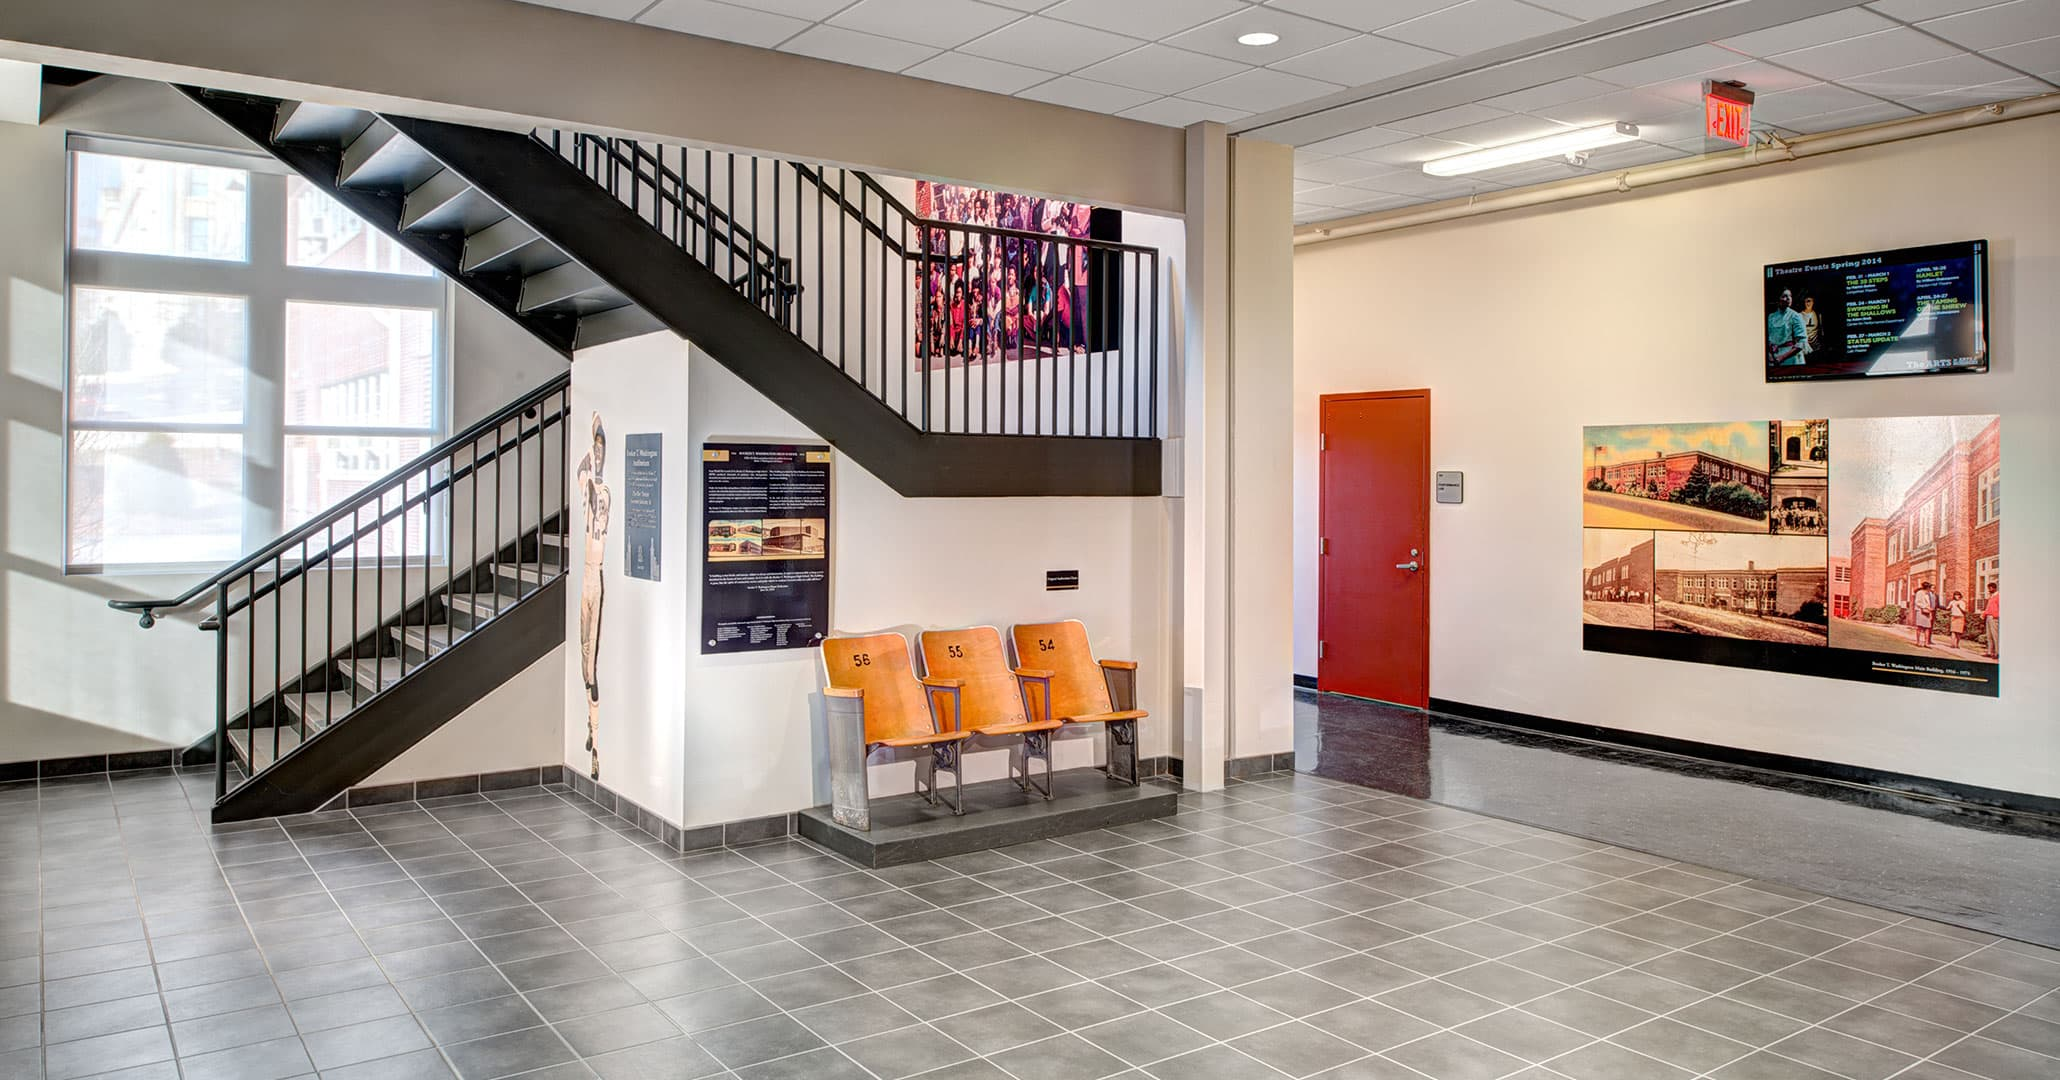 Boudreaux architects worked with the University of South Carolina to renovate and improve Booker T Washington High School.